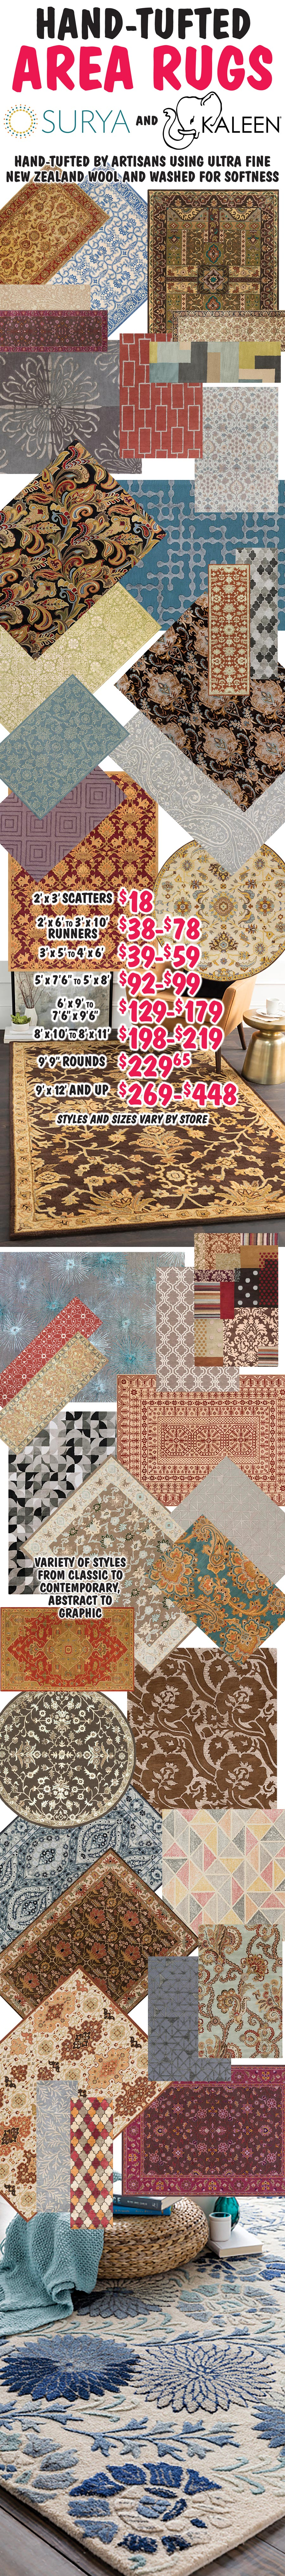 Hand-Tufted Area Rugs by SURYA and Kaleen, some made from New Zealand Wool - Scatters $18, Runners $38 to $78, 5 by 8s $99, many other sizes available, many in matching styles